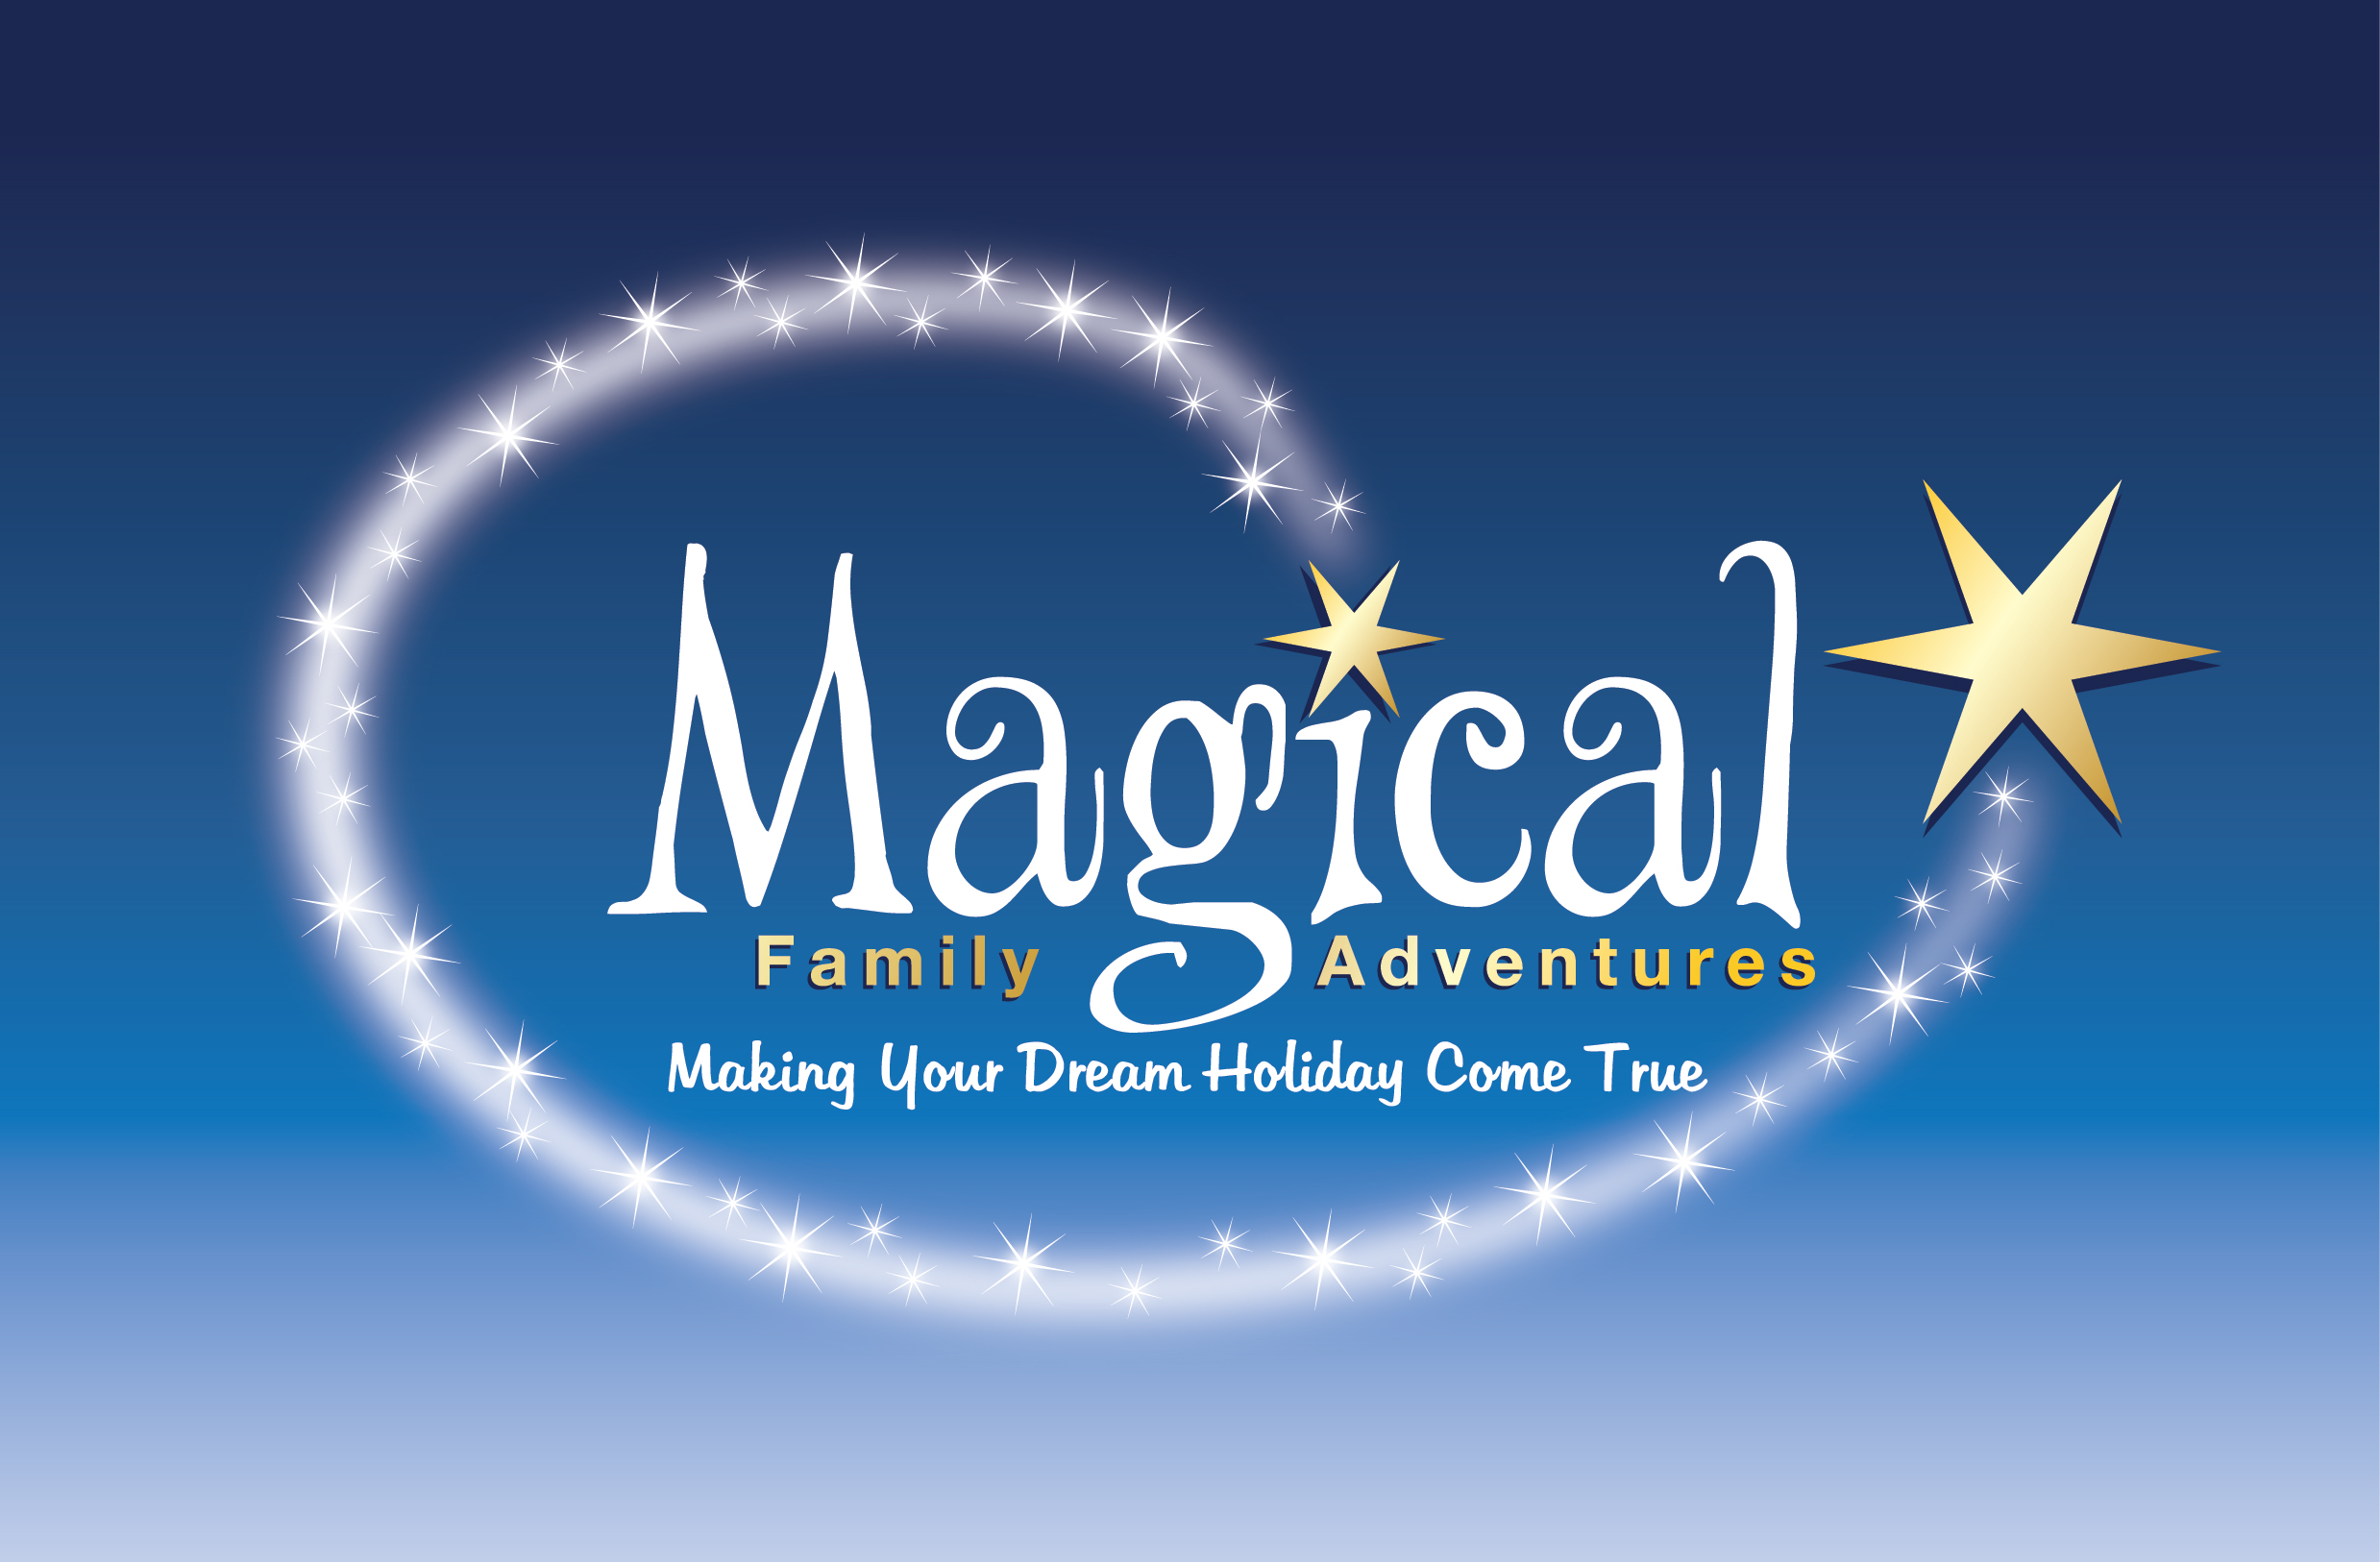 Magical Family Adventures